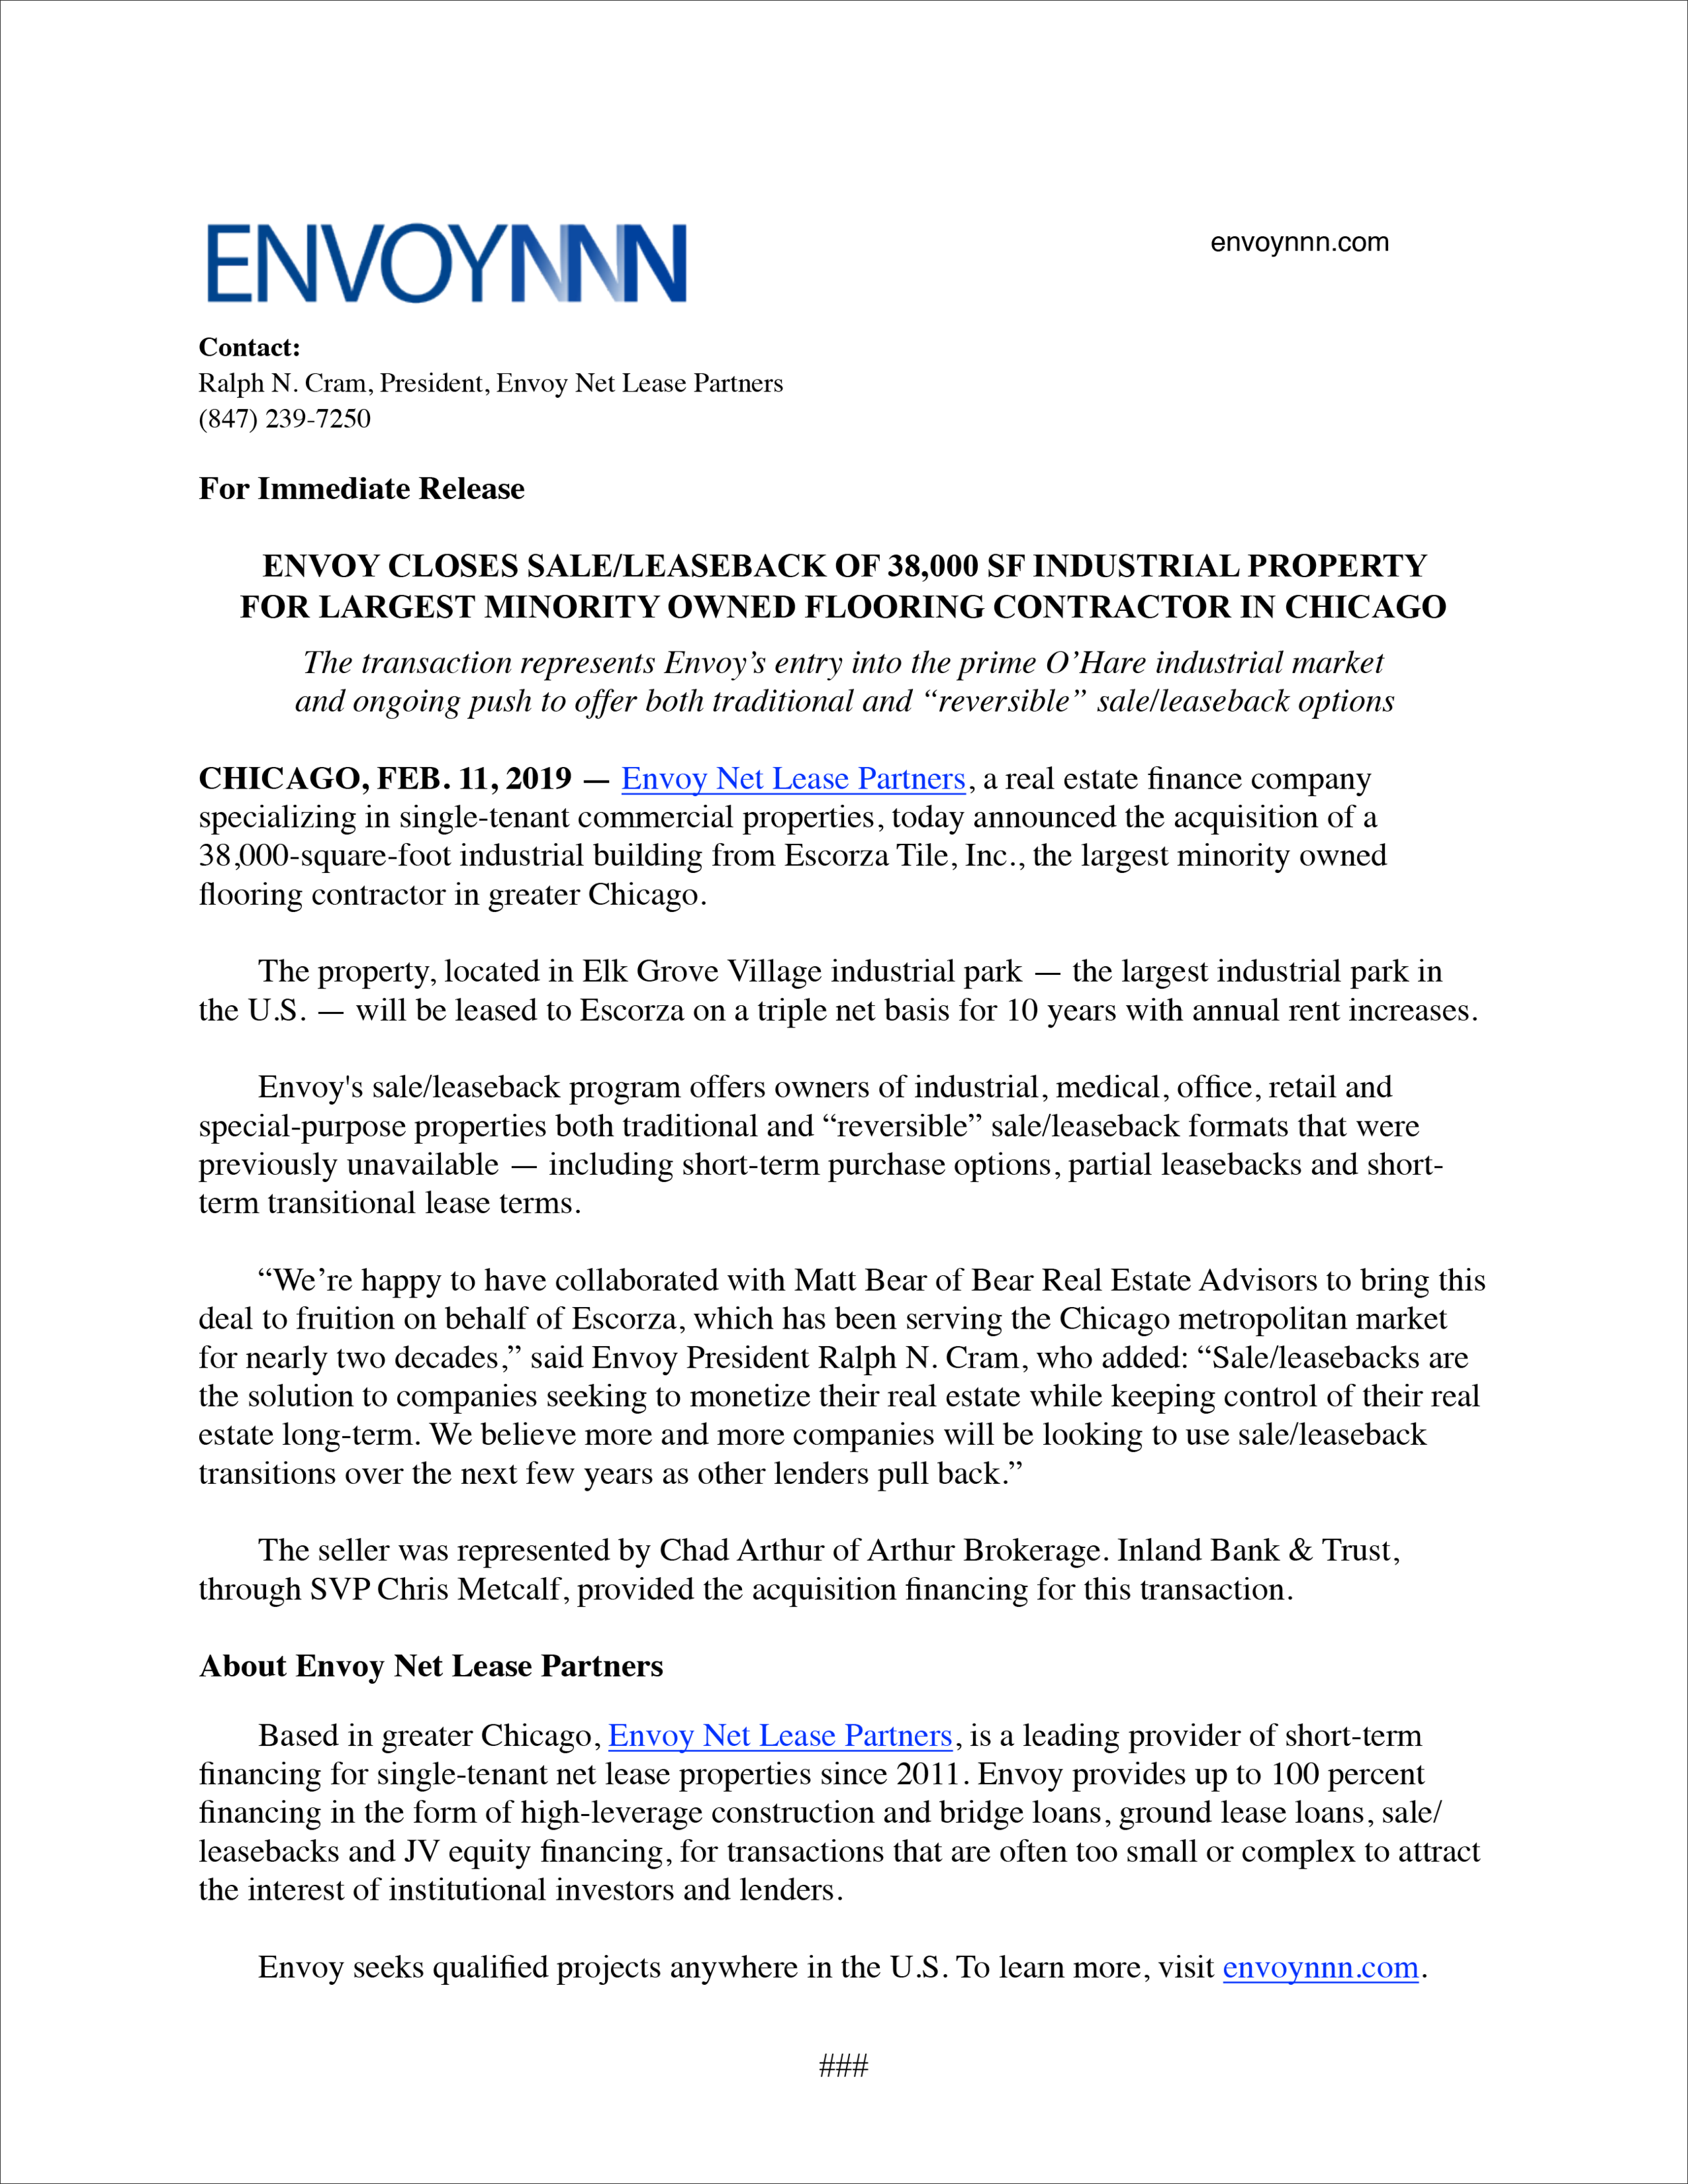 Envoy Escorza News Release FINAL.png